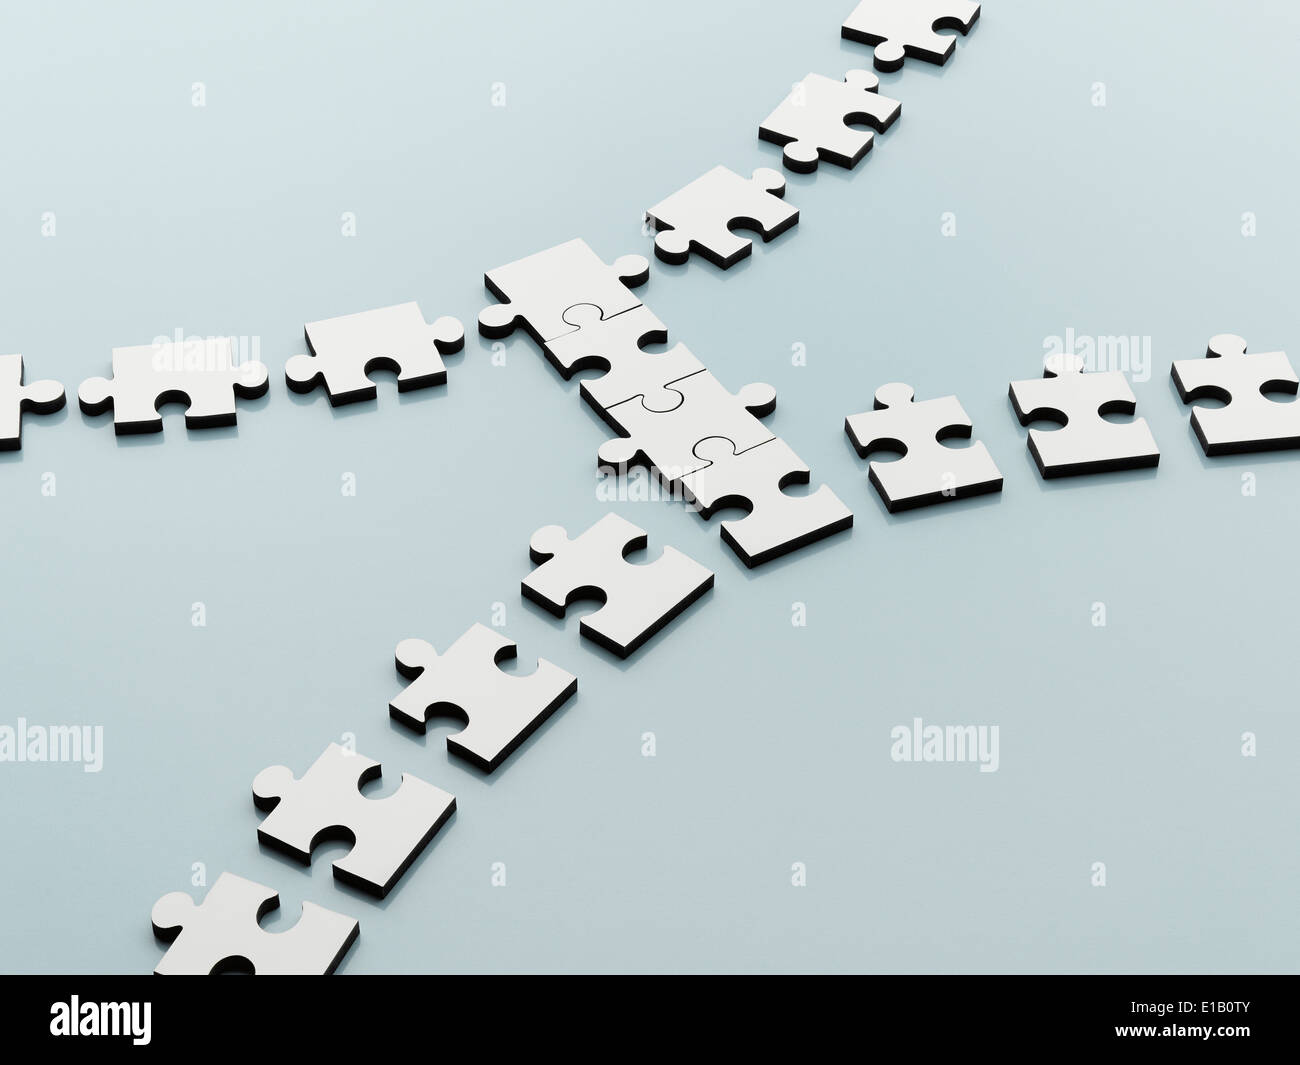 Jigsaw pieces bridging the gap Stock Photo